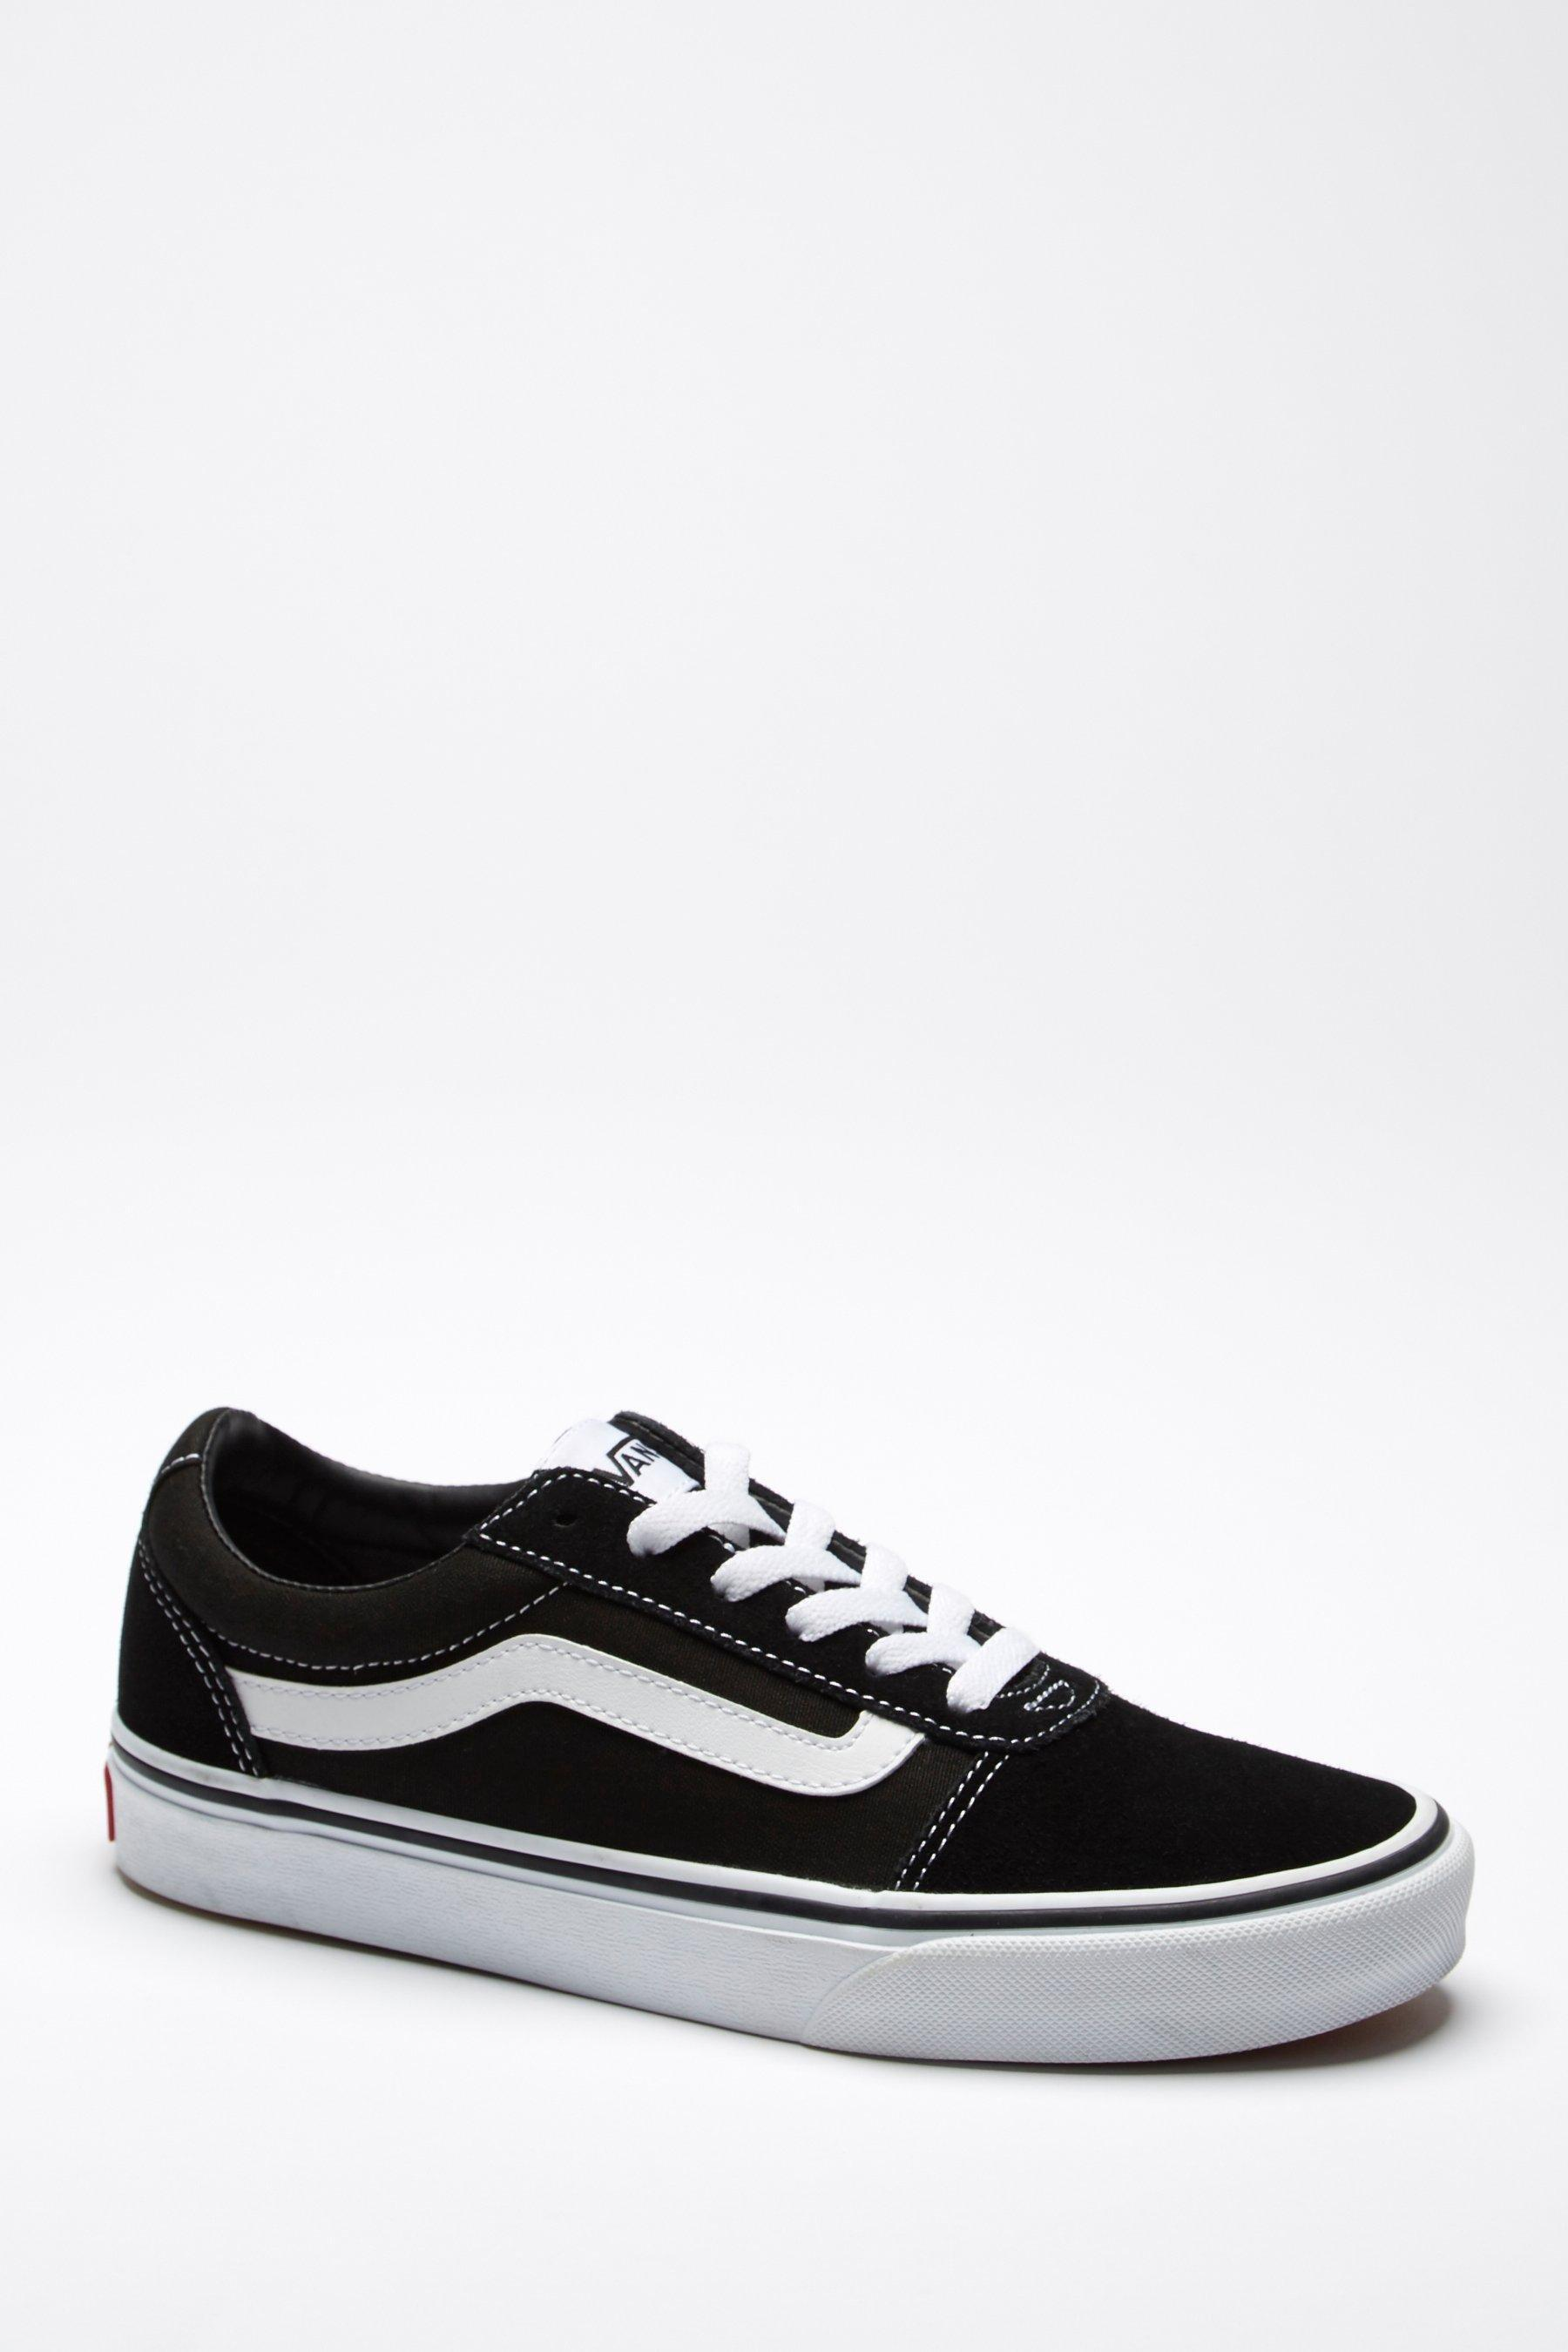 e81d8dac990 Image for Vans Ward Side Stripe Trainers from studio. Super Zoom